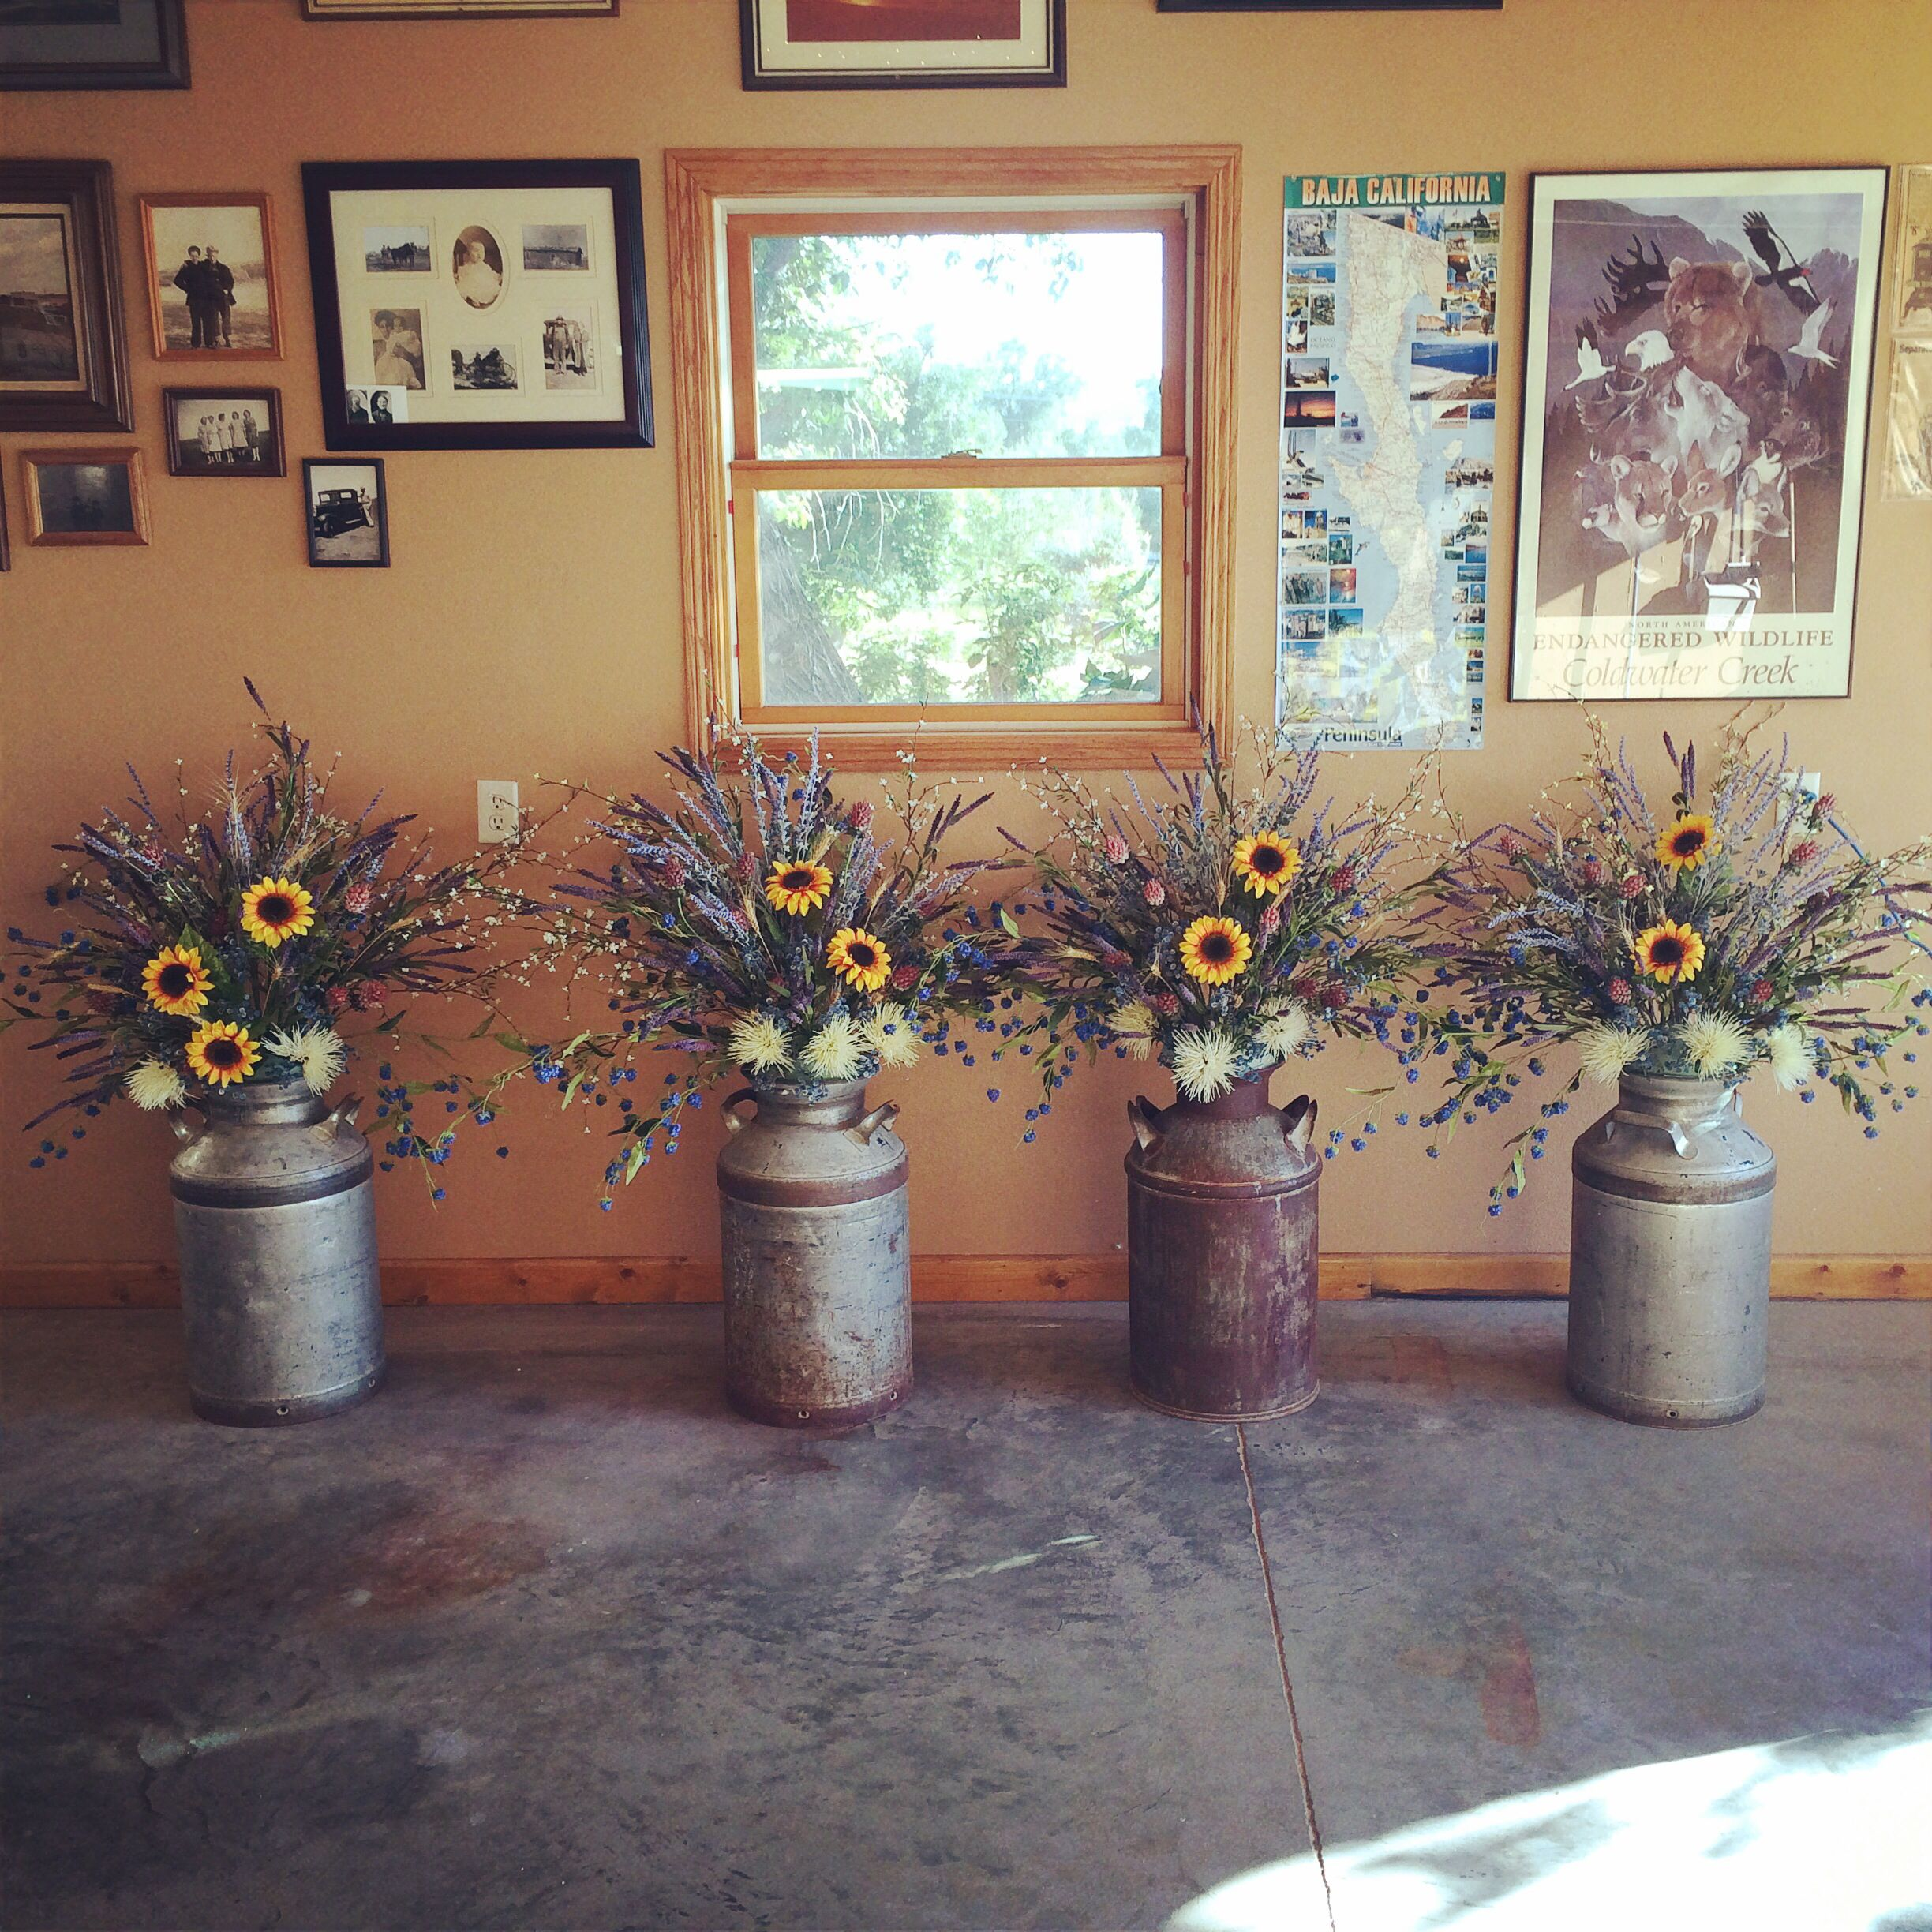 My wedding flowers. #rustic #creamcans #weddingflowers #flowers